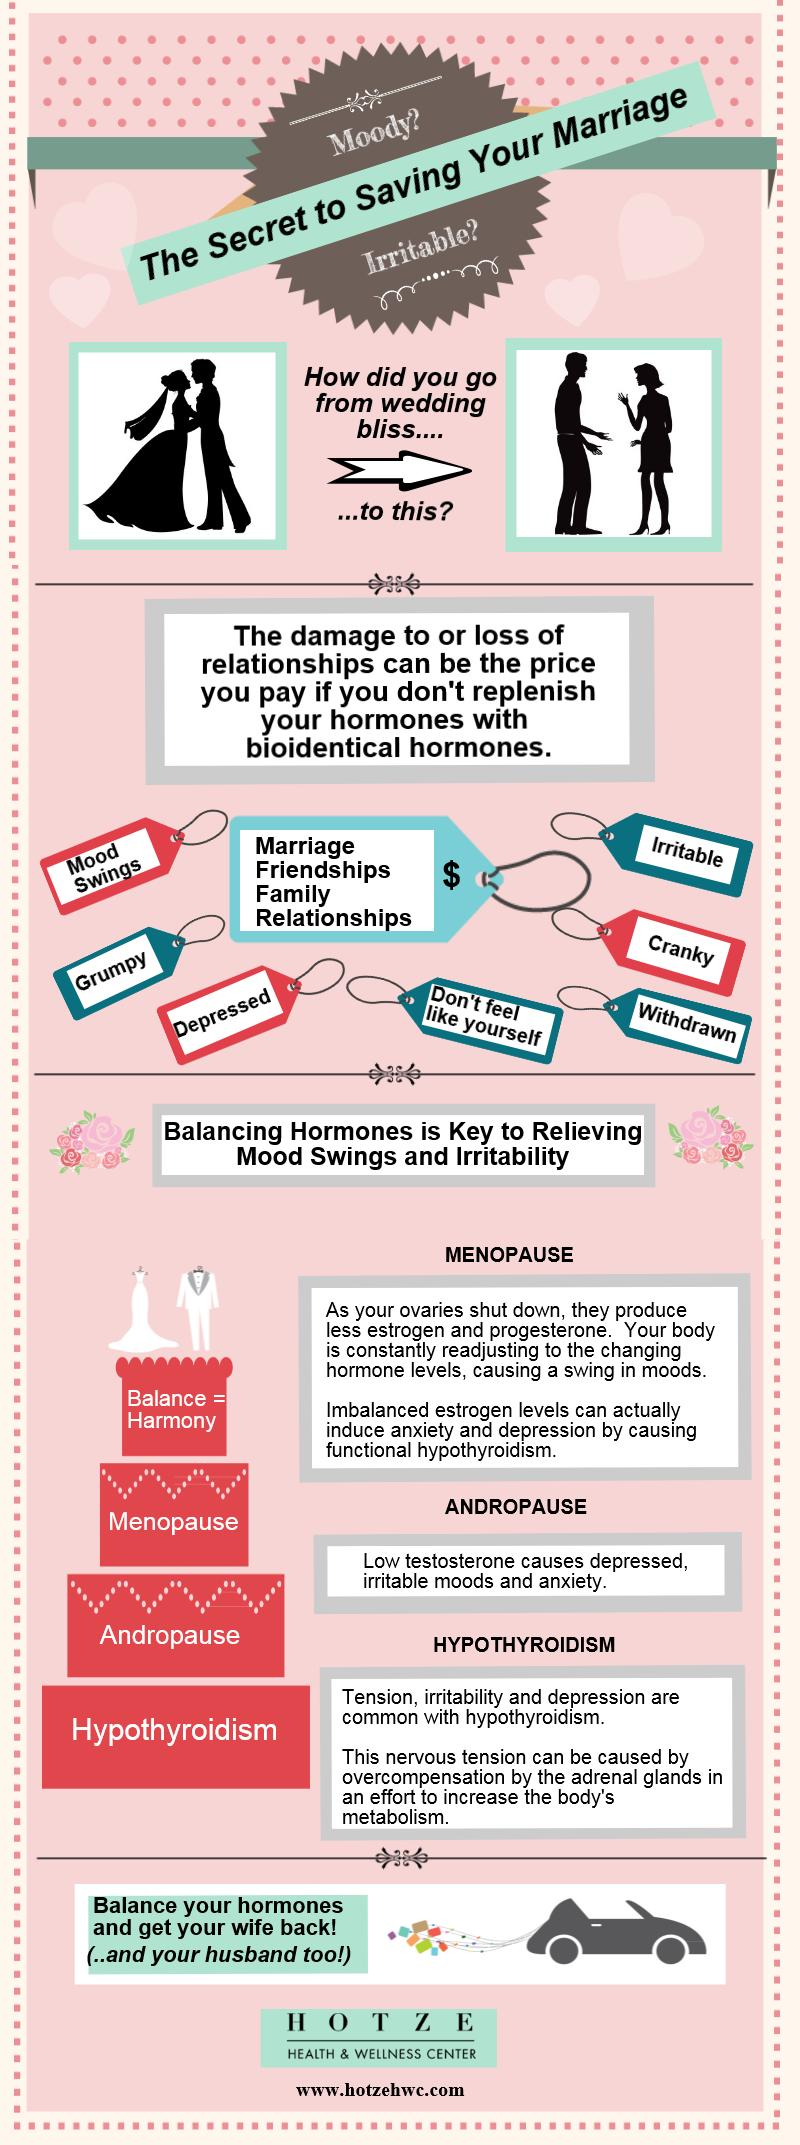 THormonal Balance Saves Marriages